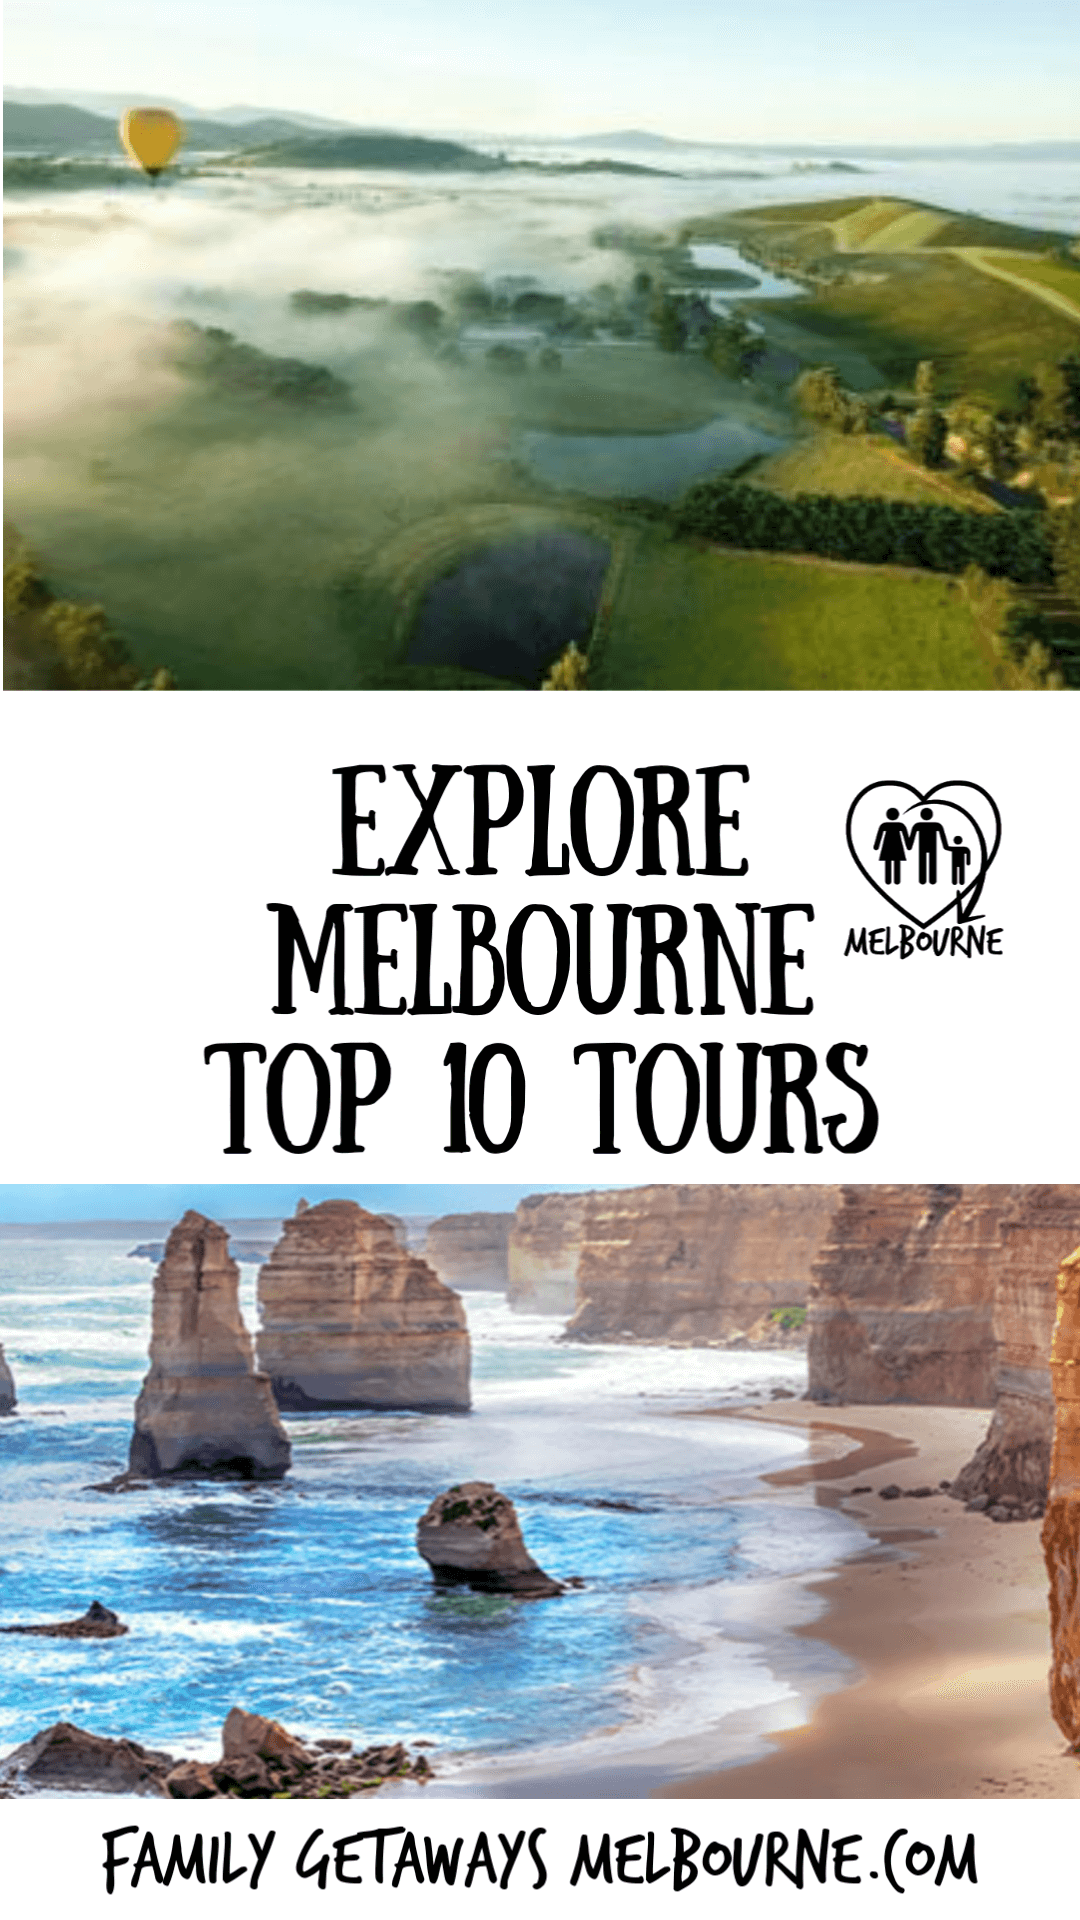 image for site page on top 10 melbourne tours